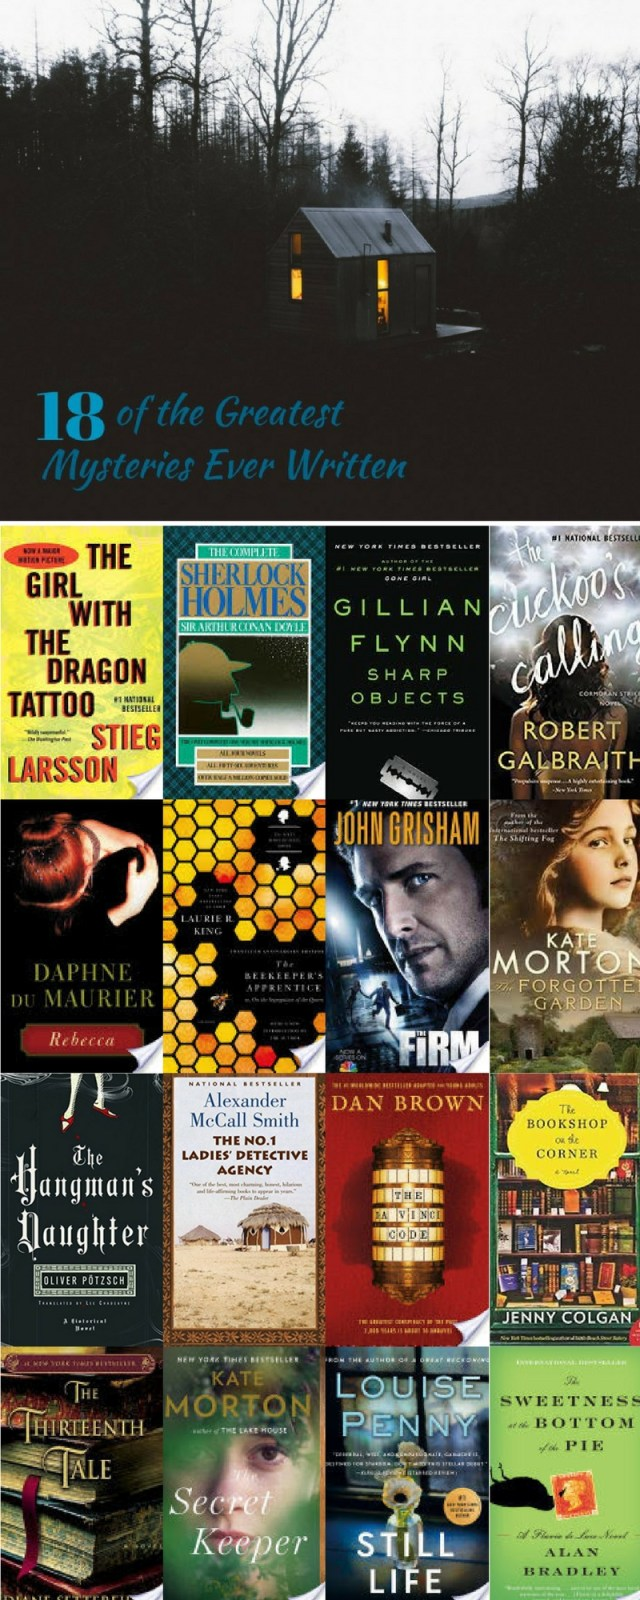 Pin Now, Read Later. From classics like Sherlock Holmes to modern masterpieces like Sharp Objects by Gillian Flynn, there is something for everyone on this list of the best mysteries ever written.